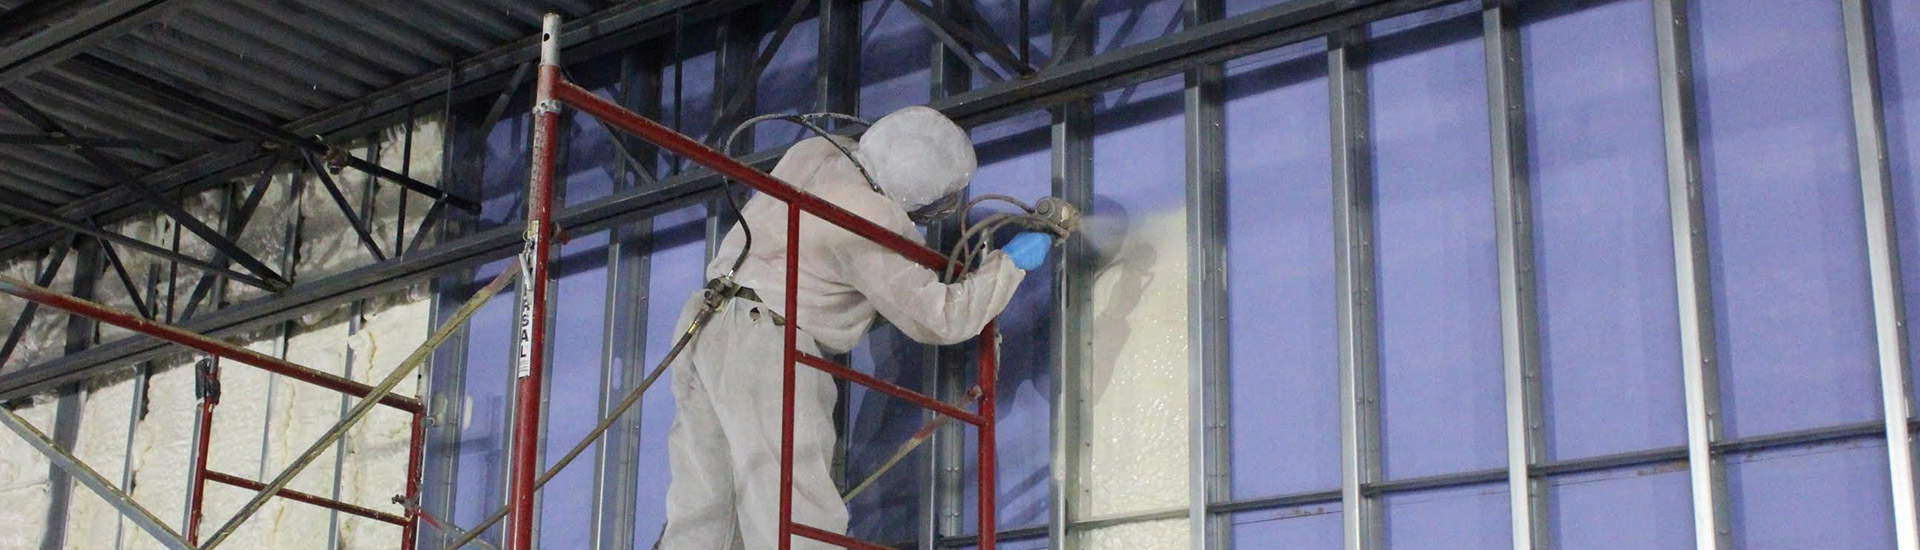 Commercial Insulation Contractors Spray Foam Insulation